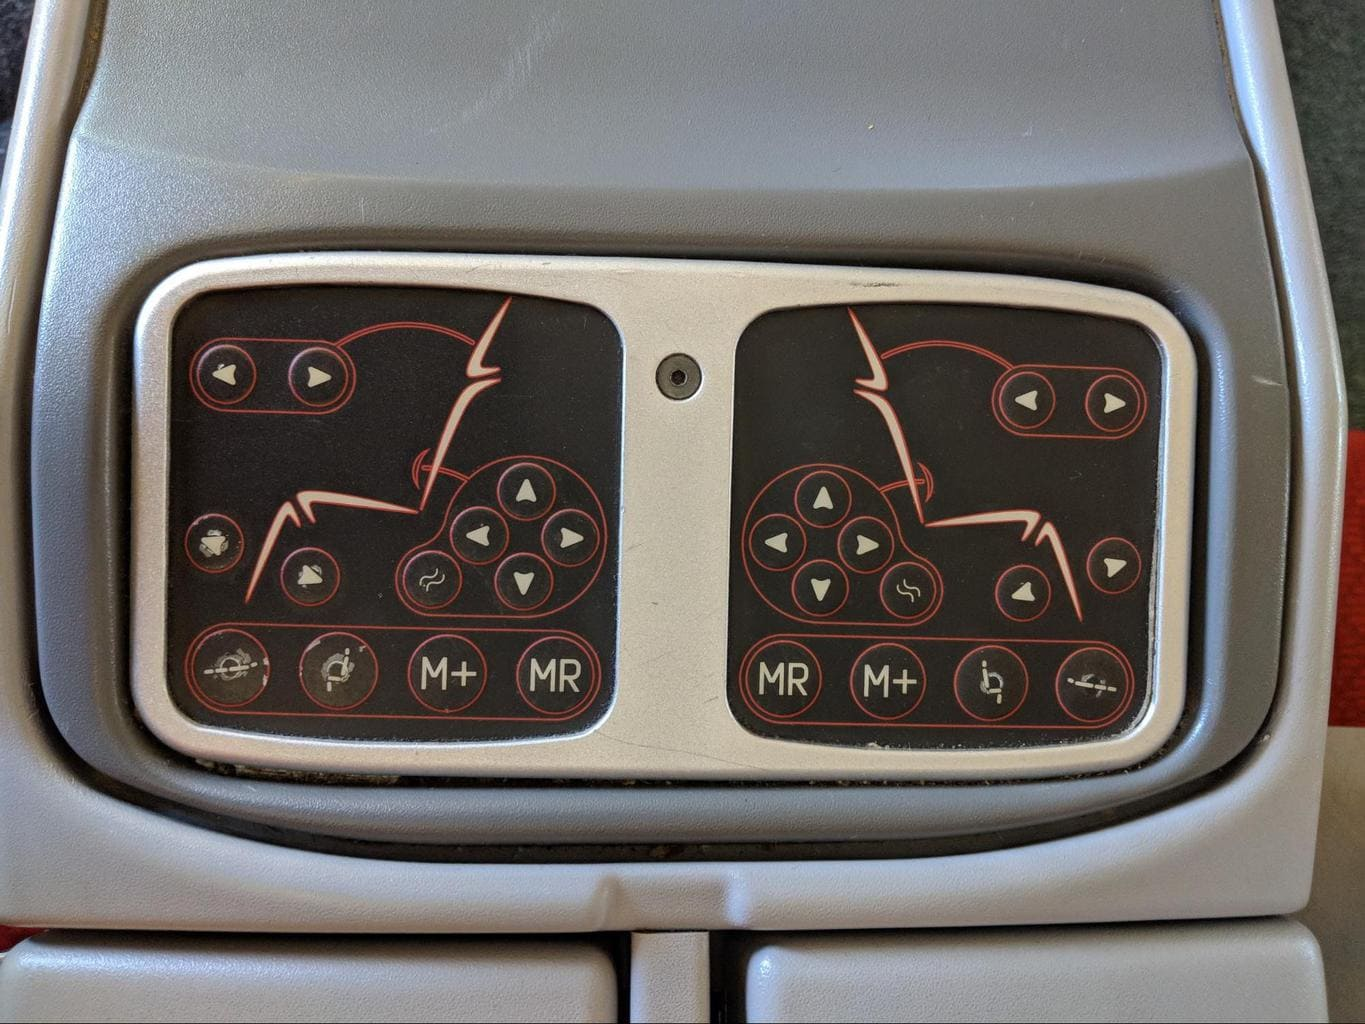 Seat management buttons